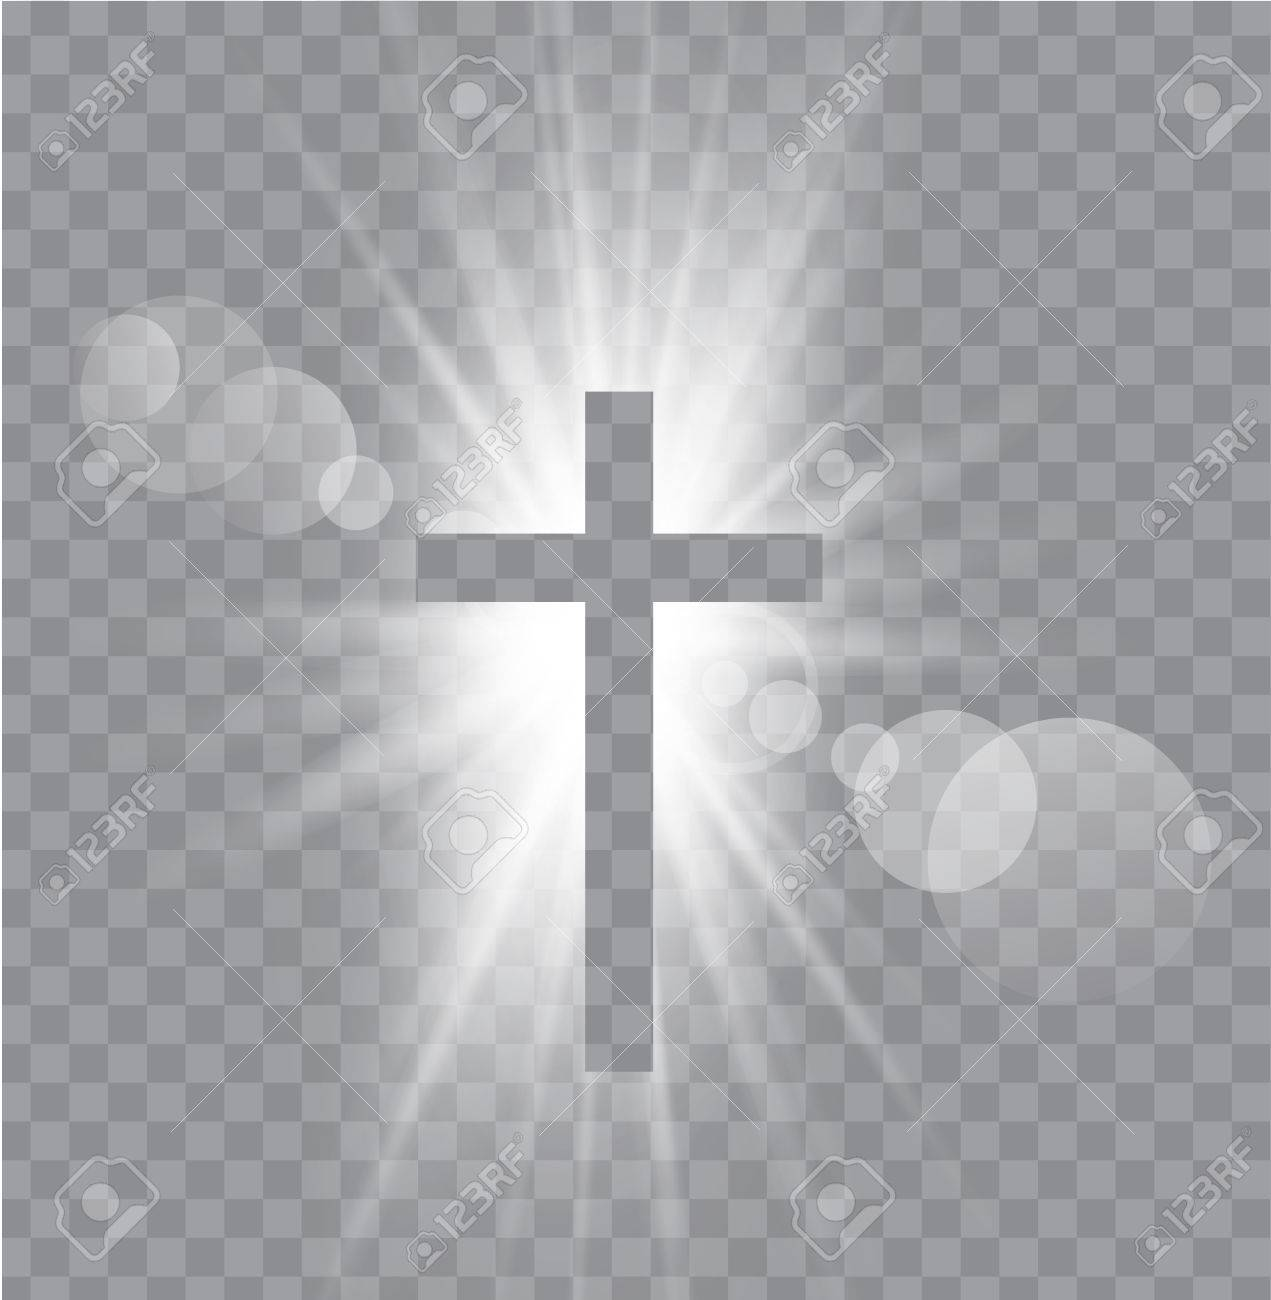 Cross with transparent background clipart - WikiClipArt